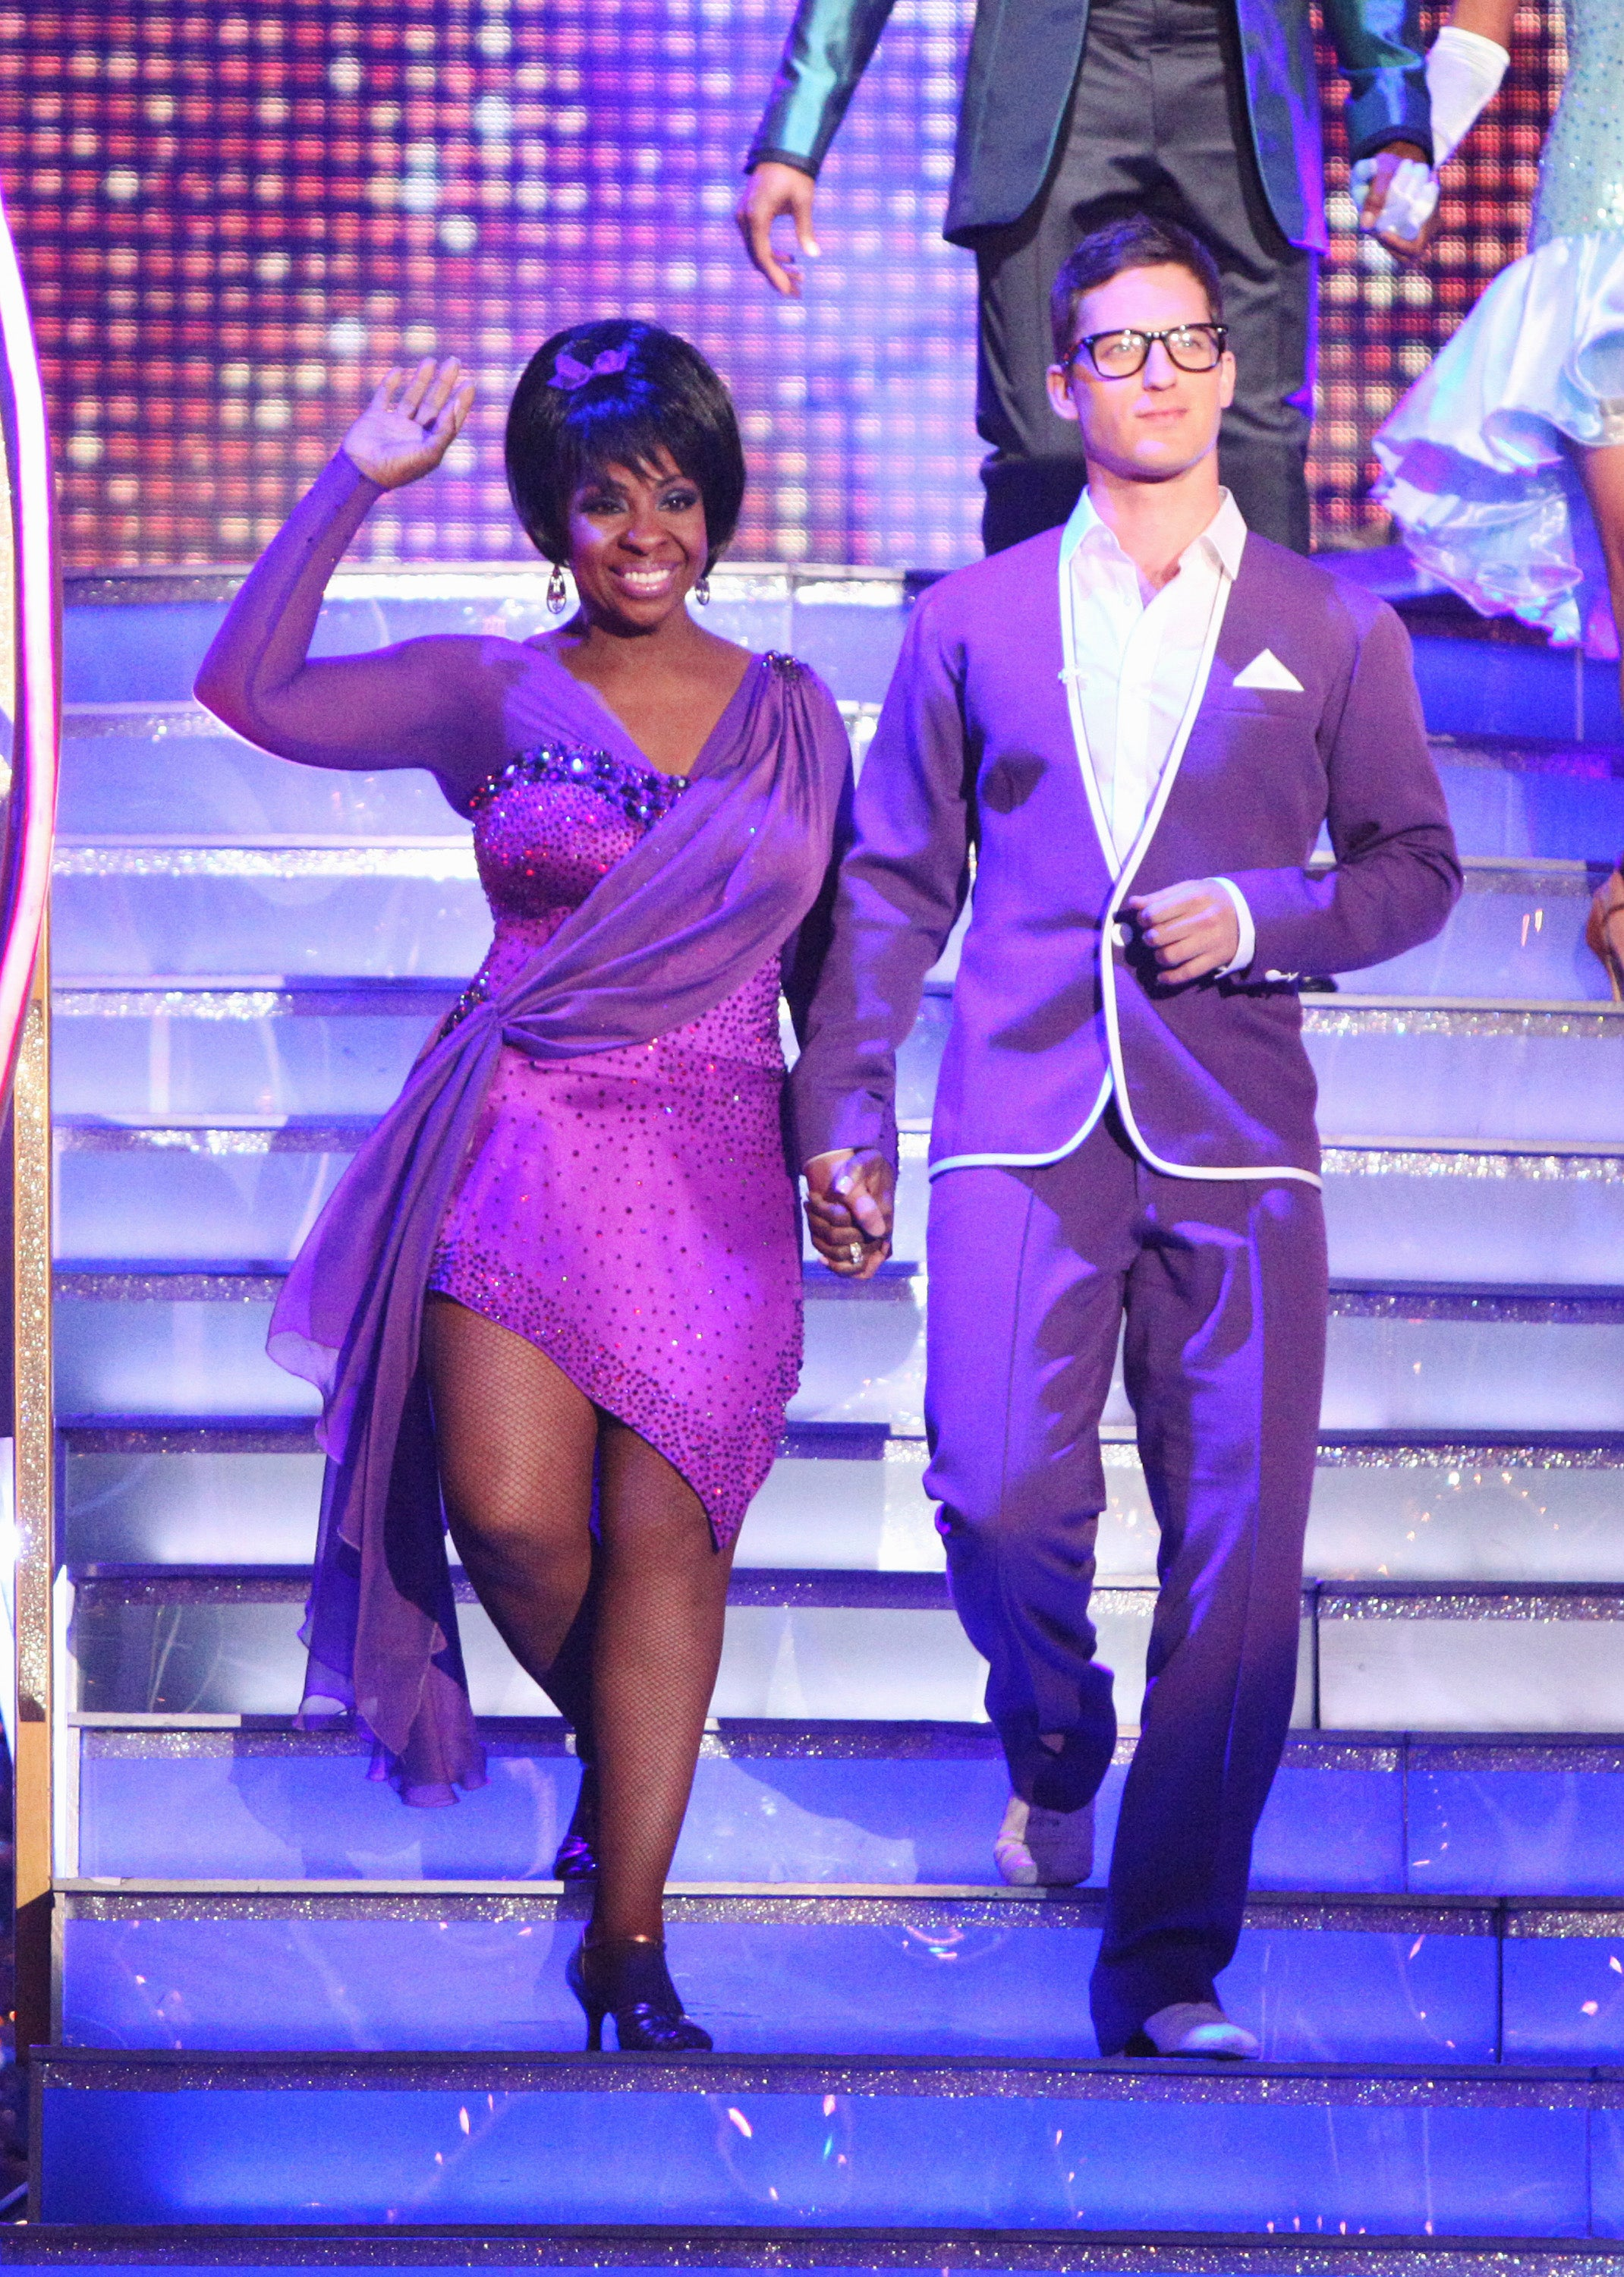 Coffee Talk: Gladys Knight Eliminated from 'Dancing with the Stars'